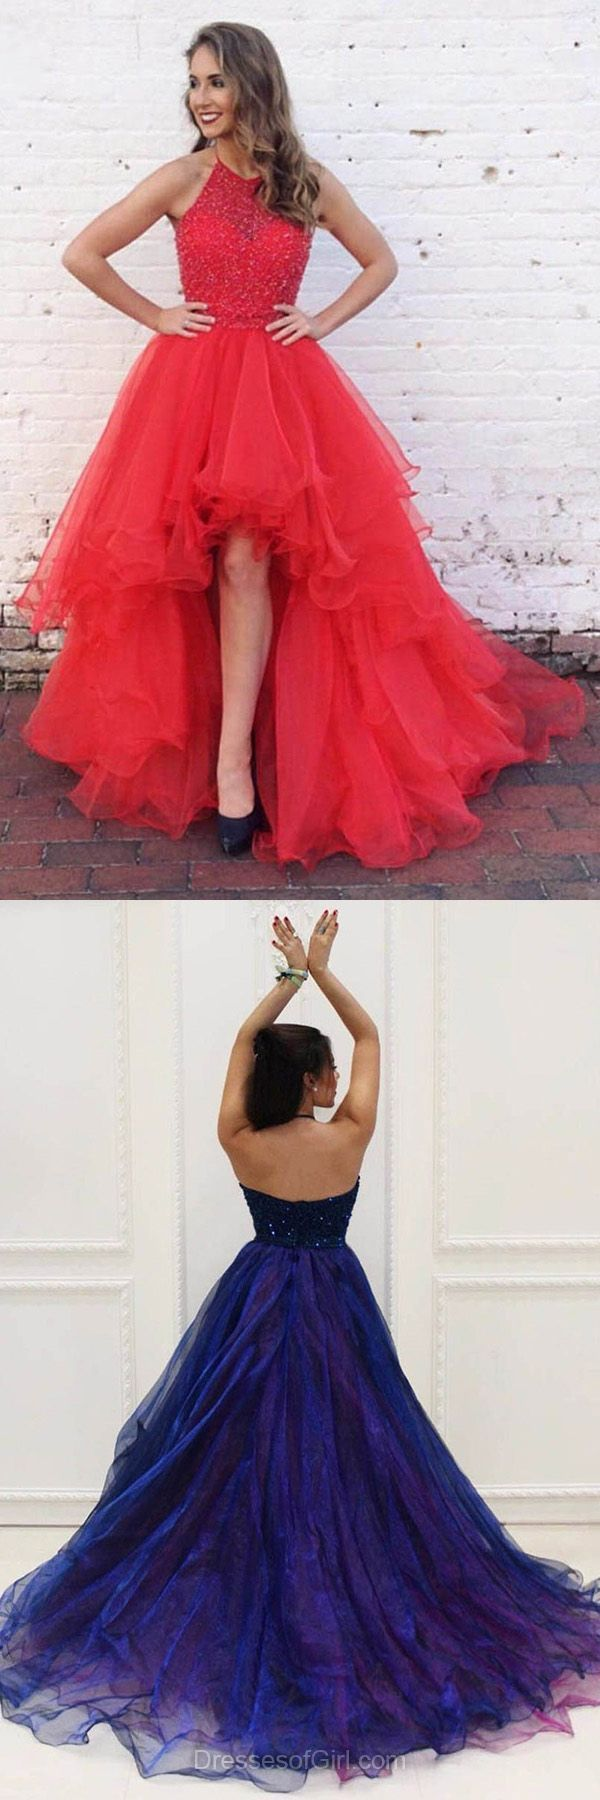 Princess Halter evening Dresses, Organza Asymmetrical Party Dresses, Beading Red Homecoming Dresses, Backless High Low Formal Dresses, Modern Girls Prom Dresses